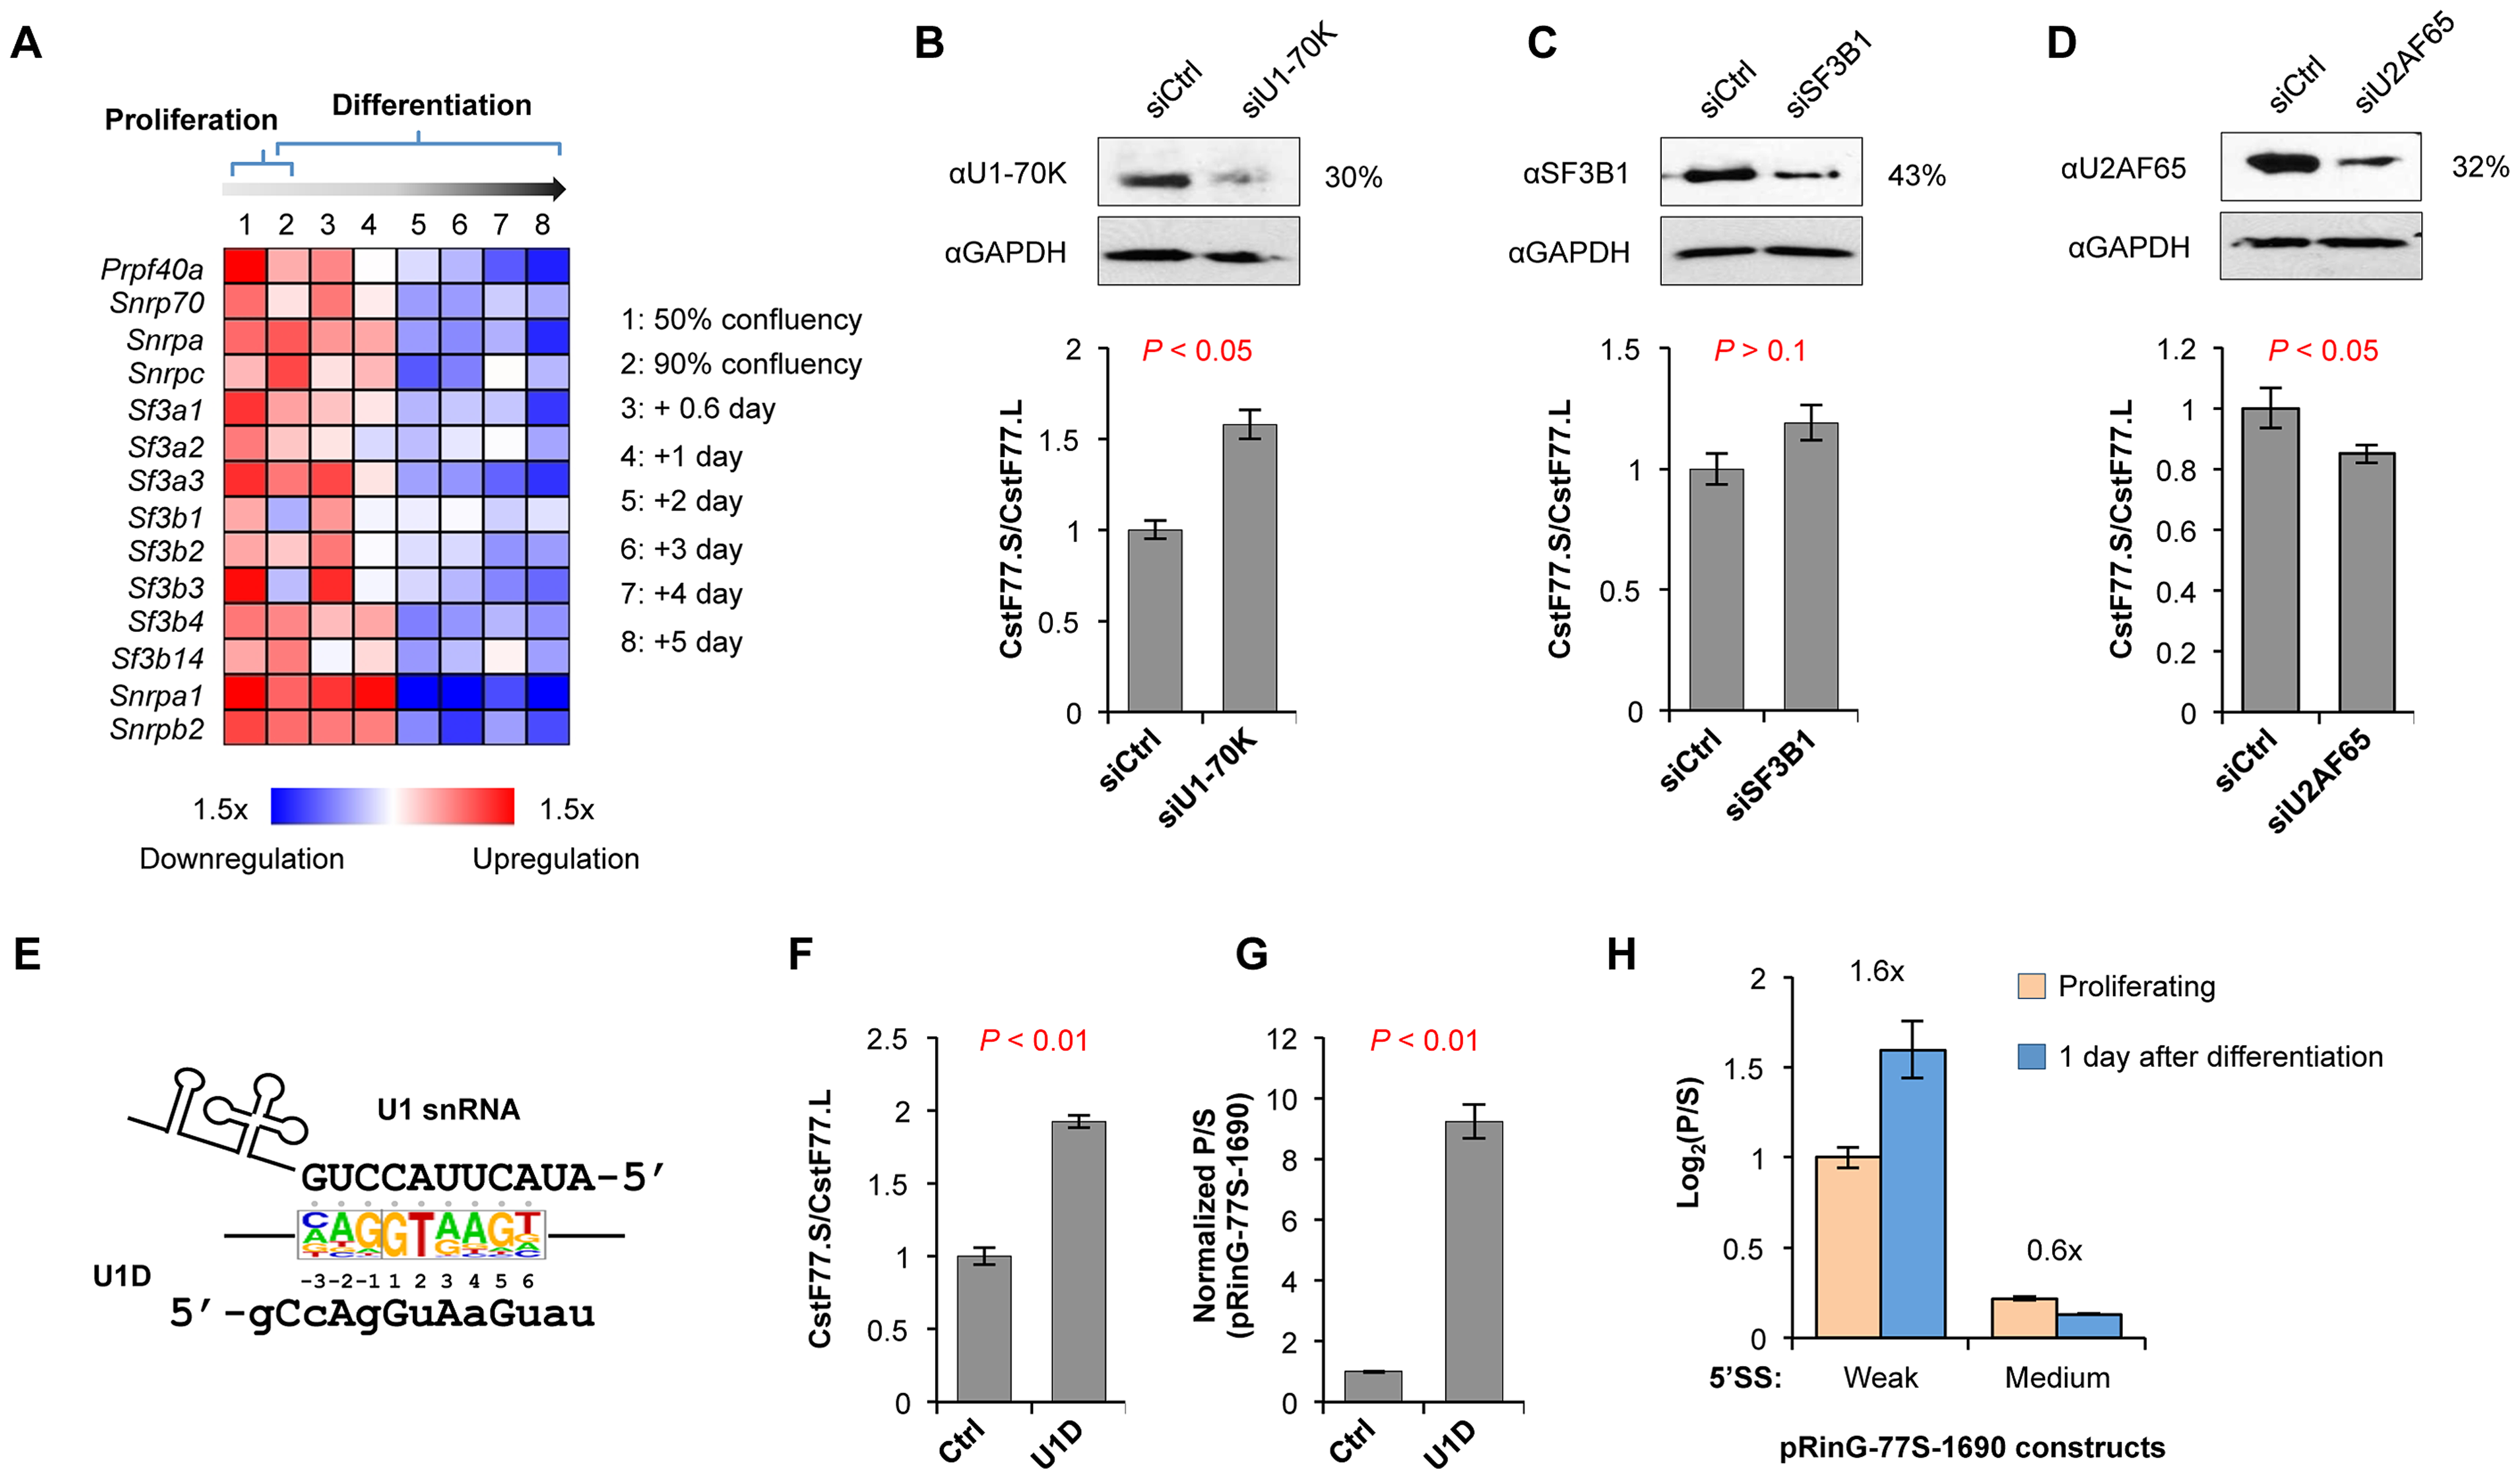 U1 snRNP regulates the usage of intronic pA of CstF-77 gene.